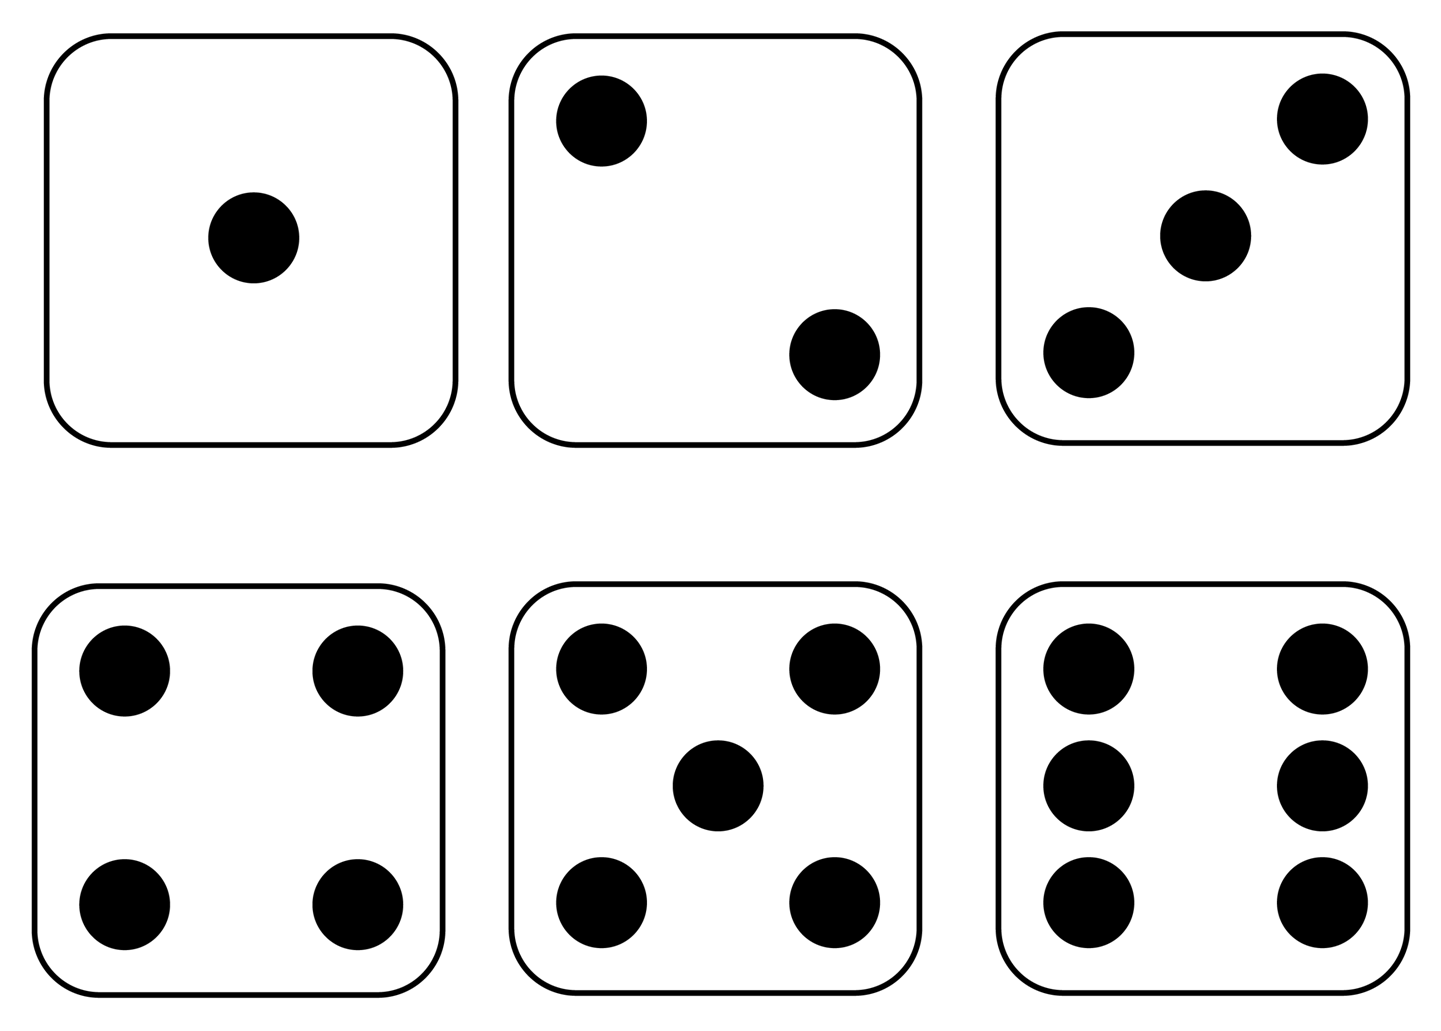 Dice clipart number 4. Free images download clip